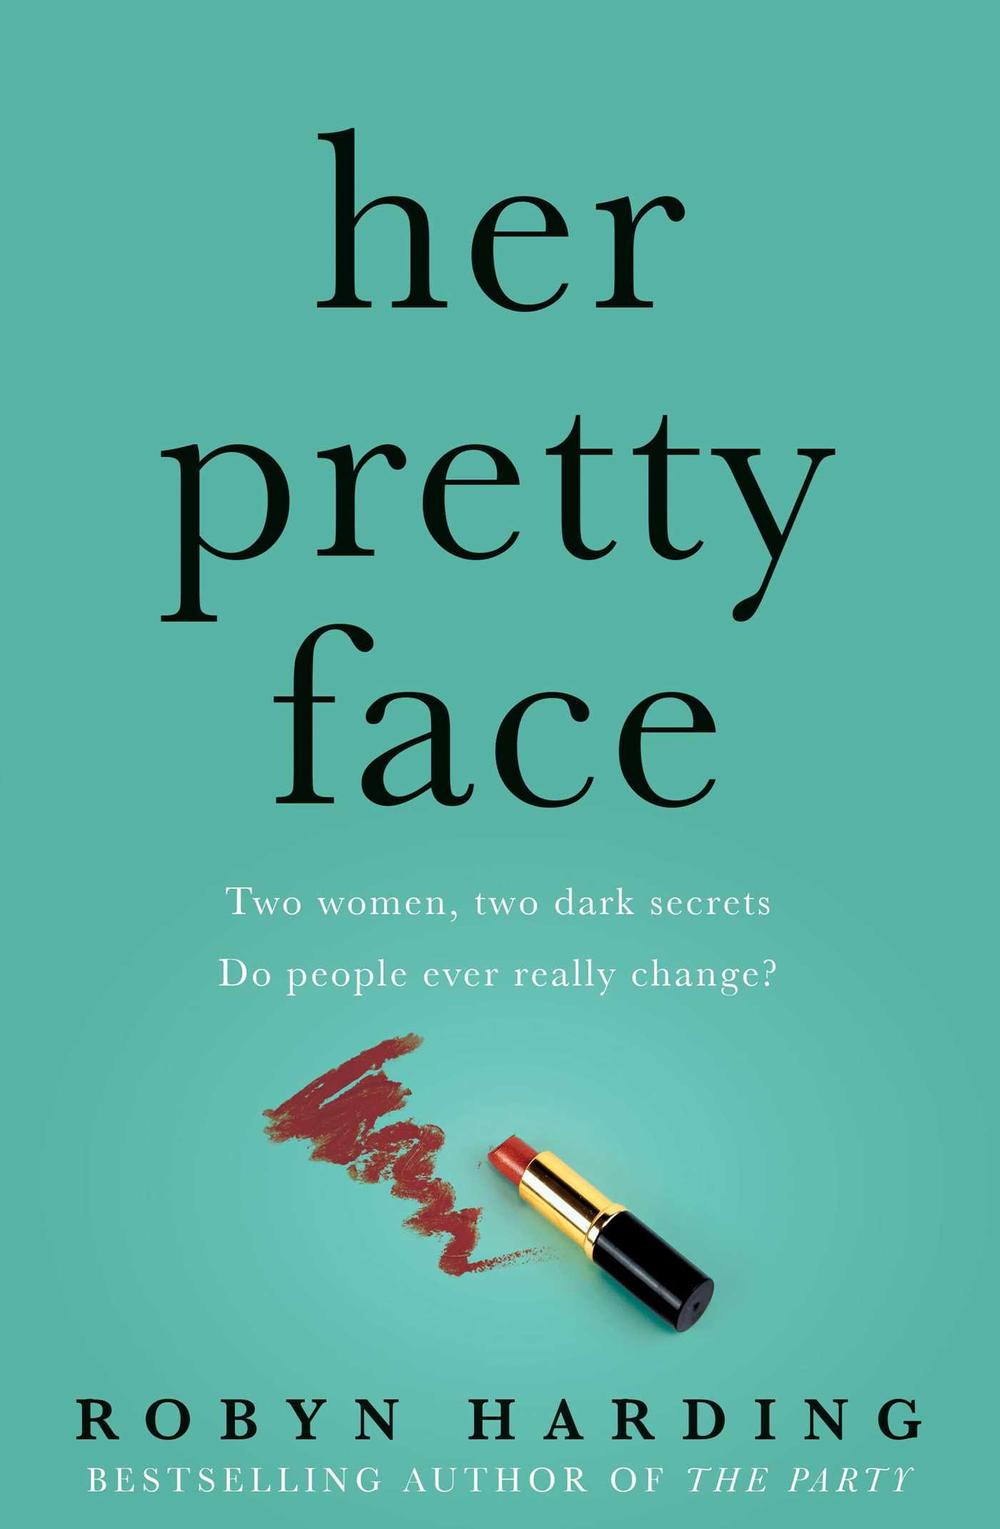 Her Pretty Face by Robyn Harding, ISBN: 9781925750935